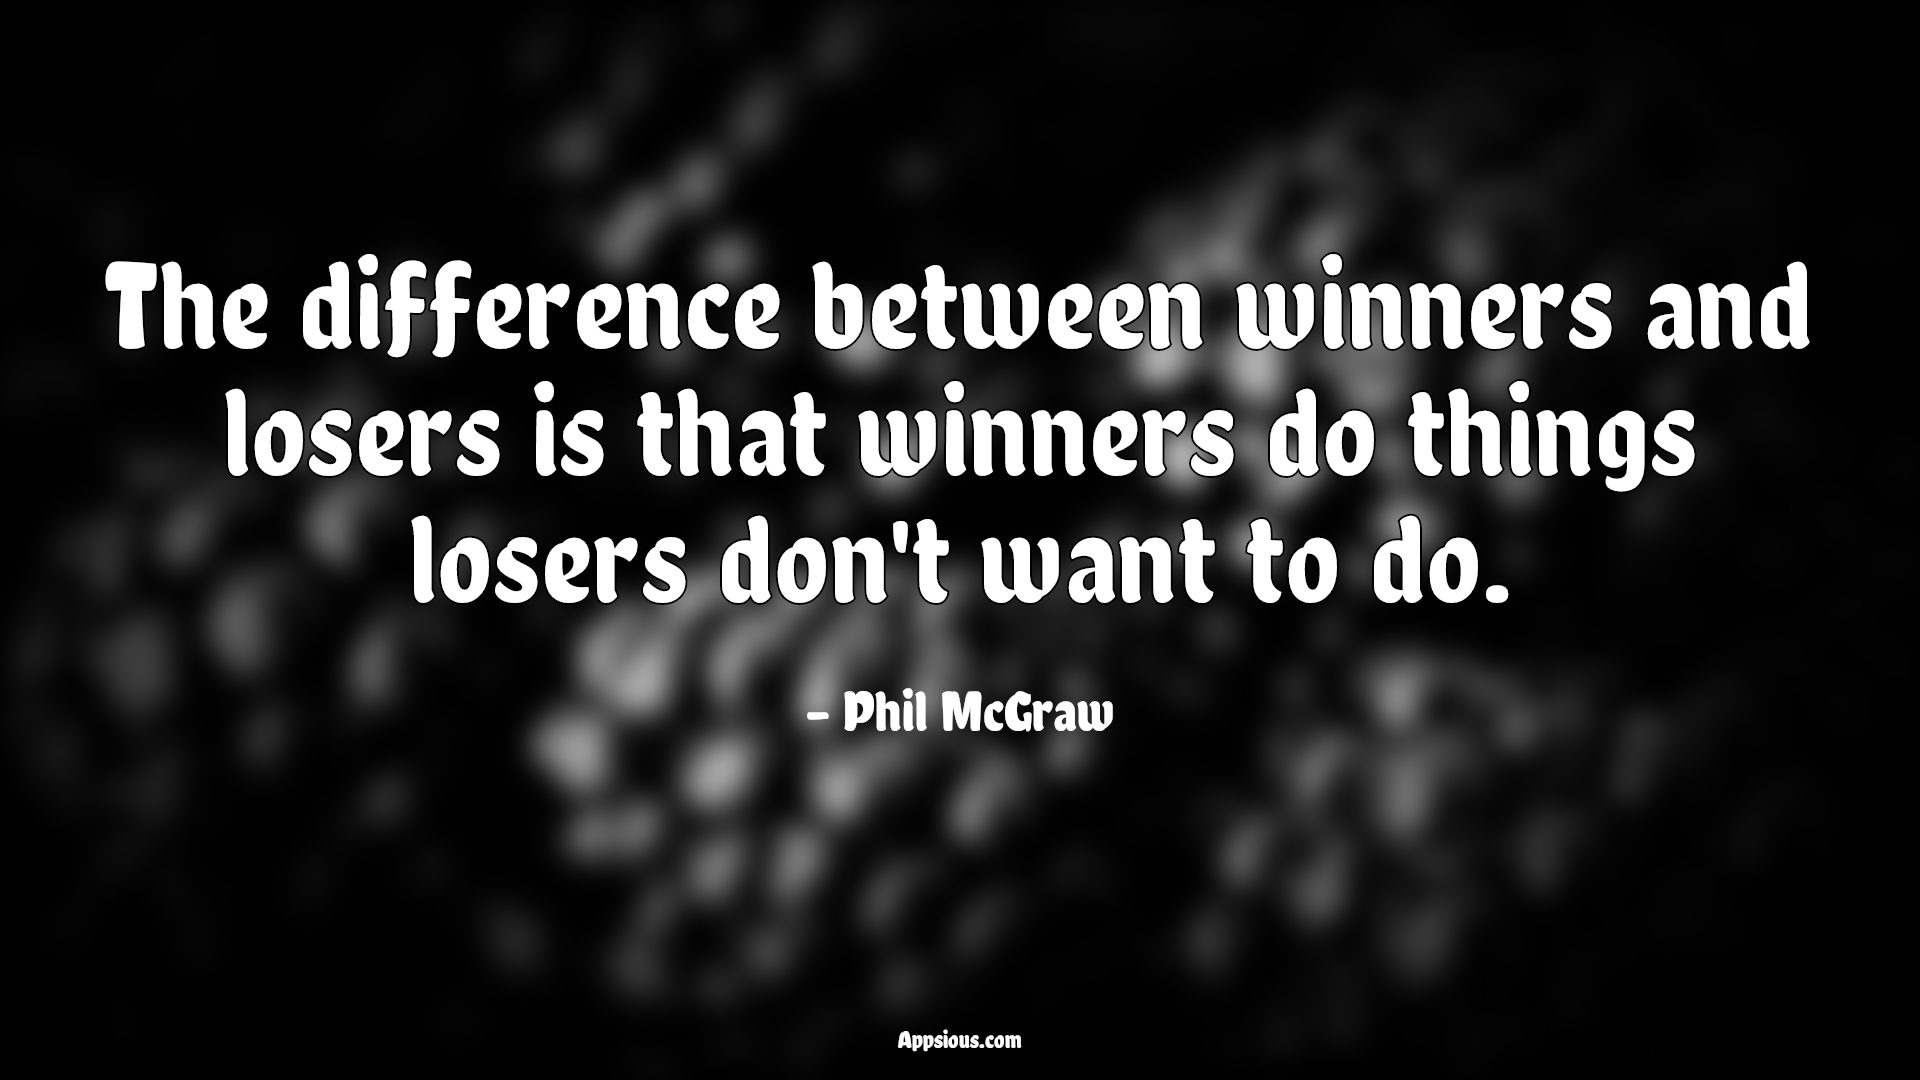 The difference between winners and losers is that winners do things losers don't want to do.